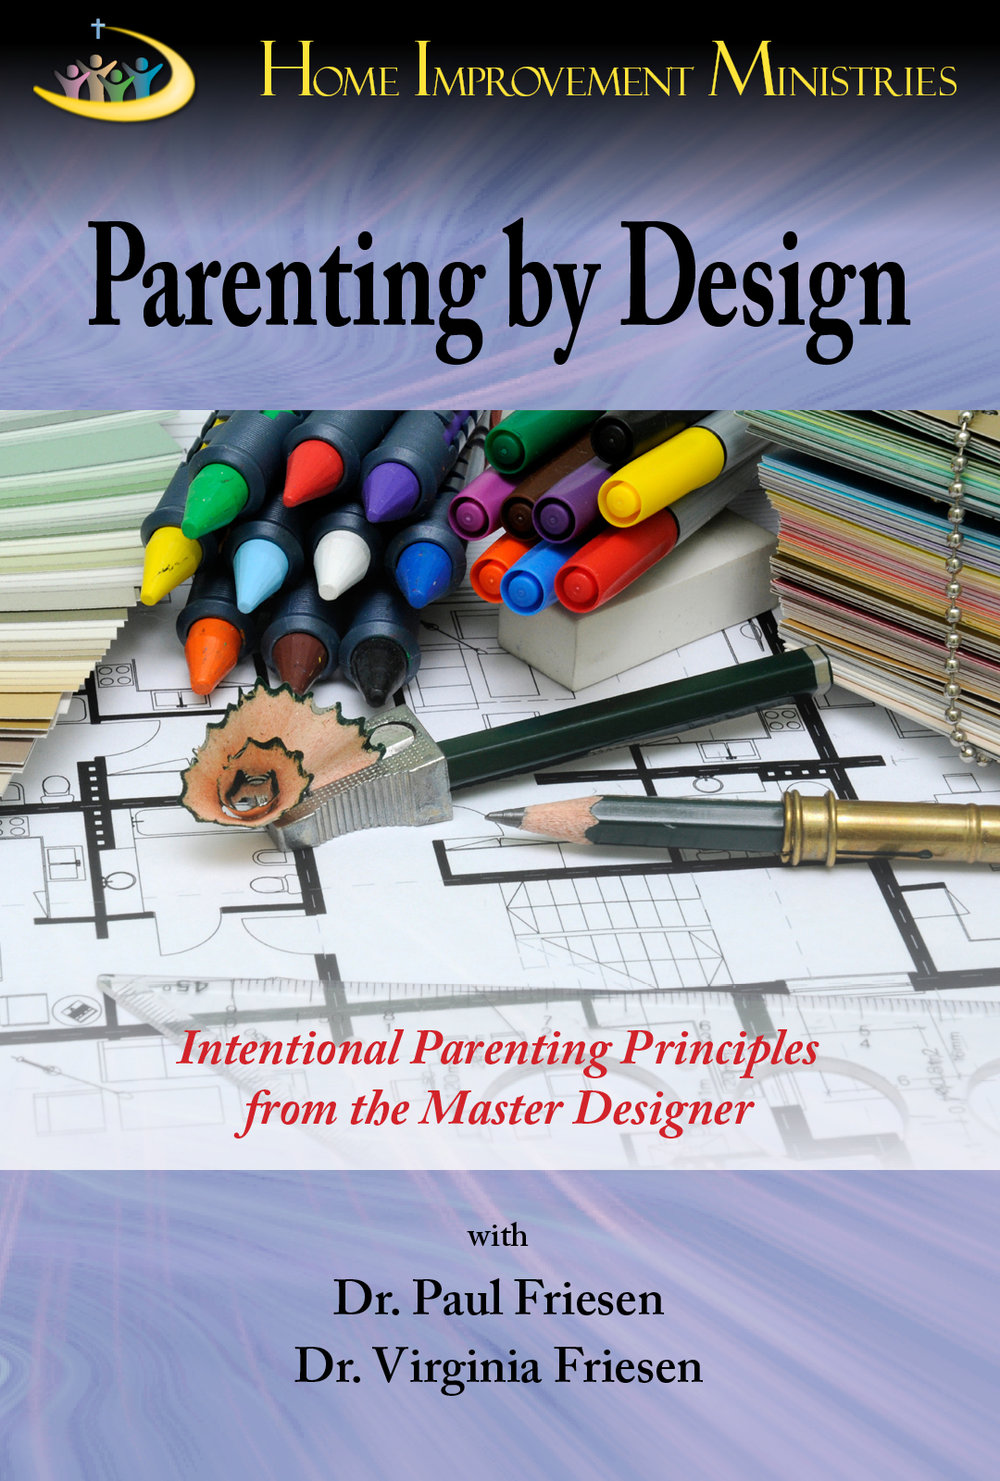 Parenting by Design - We would never build a house without plans, nor allow our children to make all their educational choices, yet we often don't seem to have a plan when it comes to the values, convictions, and character we wish to see in our children.  This video series helps you be more intentional about this incredible privilege and responsibility called parenting.